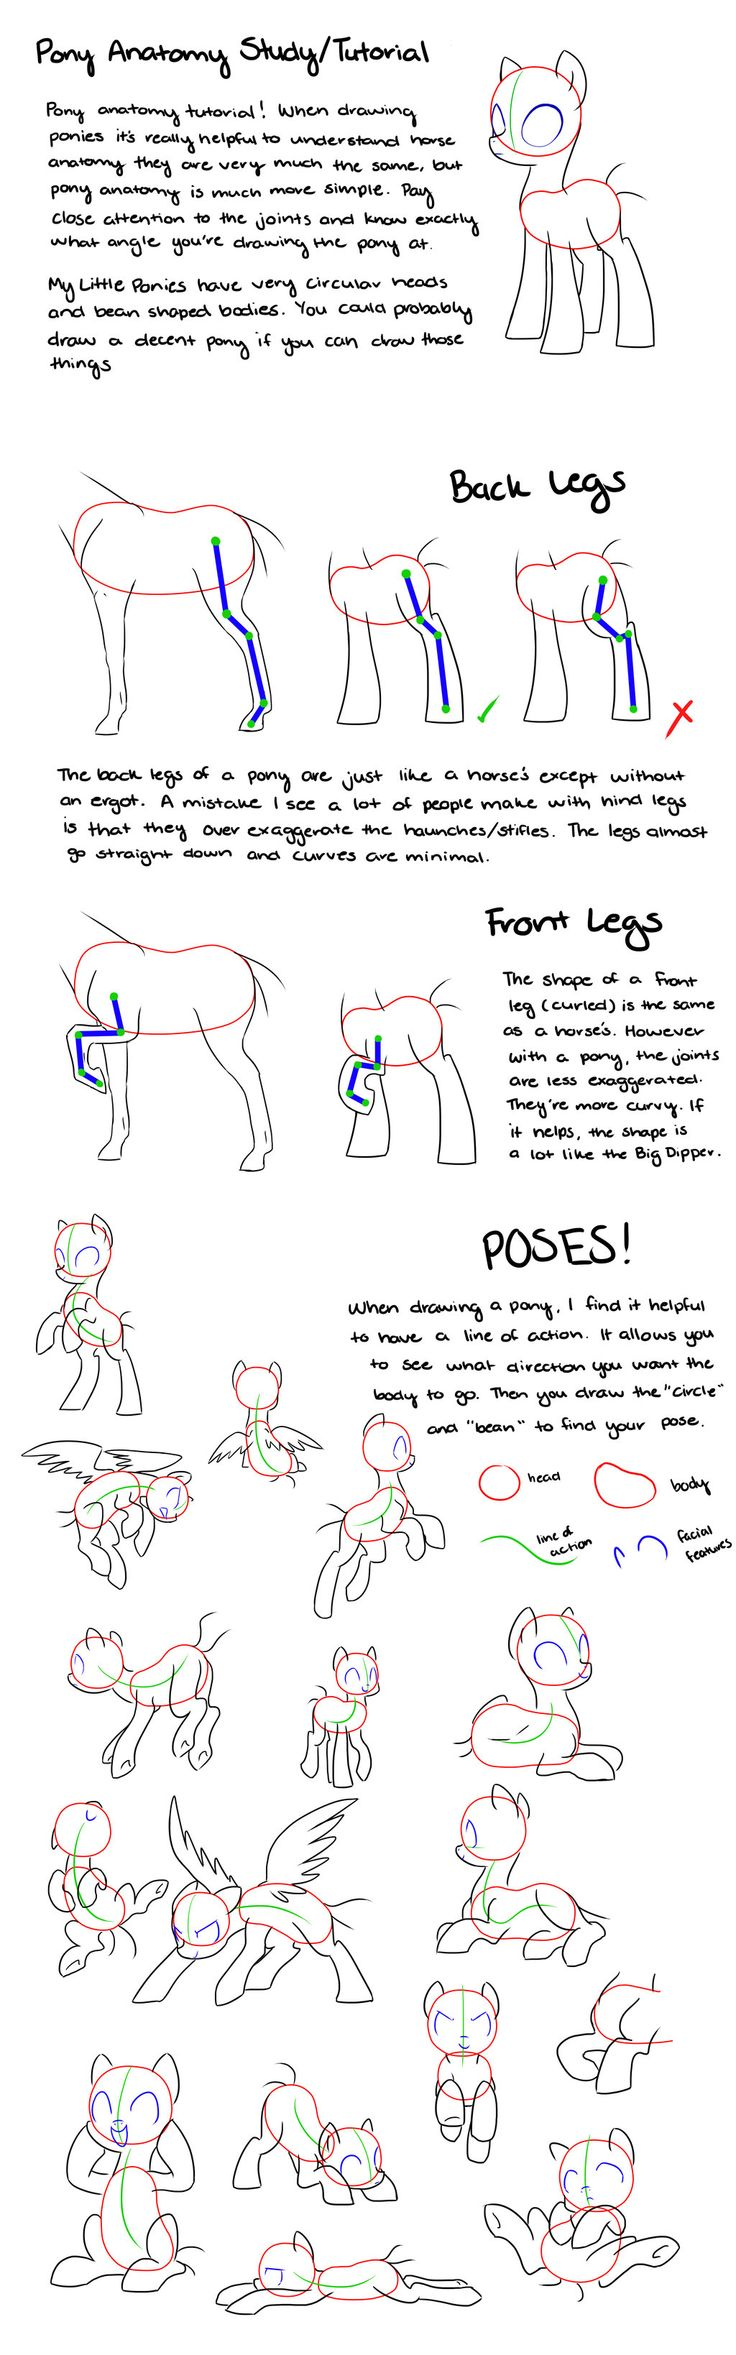 Pony Anatomy Tips/Study/Tutorial by kilala97 on DeviantArt